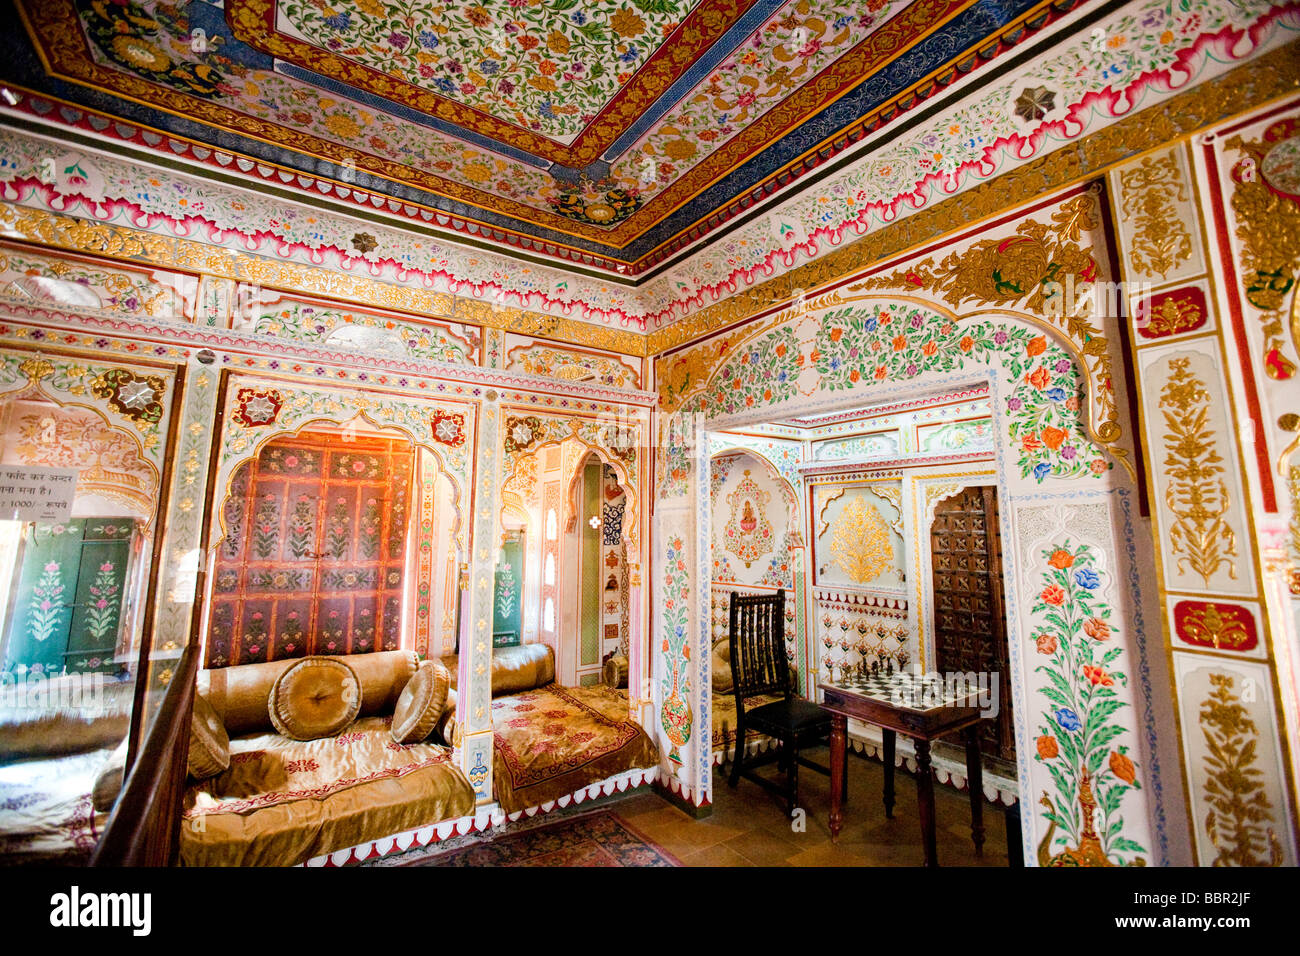 Interior of nathmal ki havelis merchants house jaisalmer